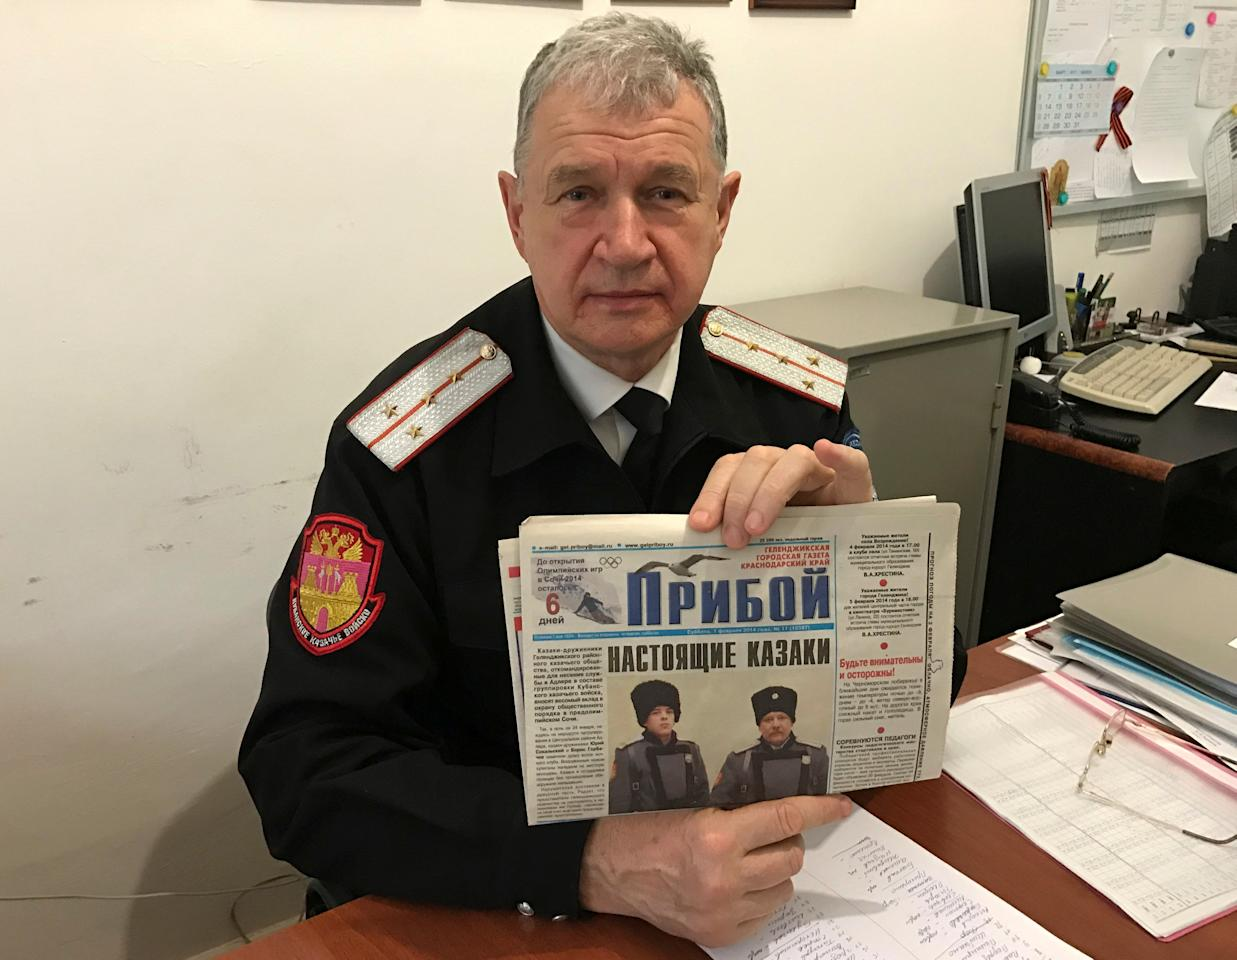 Russian Cossack commander Vladimir Bagliy shows a local newspaper with a picture of his fellow Cossack Yuri Sokalsky (R) killed near the Syrian city of Palmyra, in the Black Sea town of Gelendzhik, Russia, March 16, 2017. Picture taken March 16, 2017. REUTERS/Maria Tsvetkova  TO MATCH INSIGHT  MIDEAST-CRISIS/SYRIA-RUSSIA-CASUALTIES